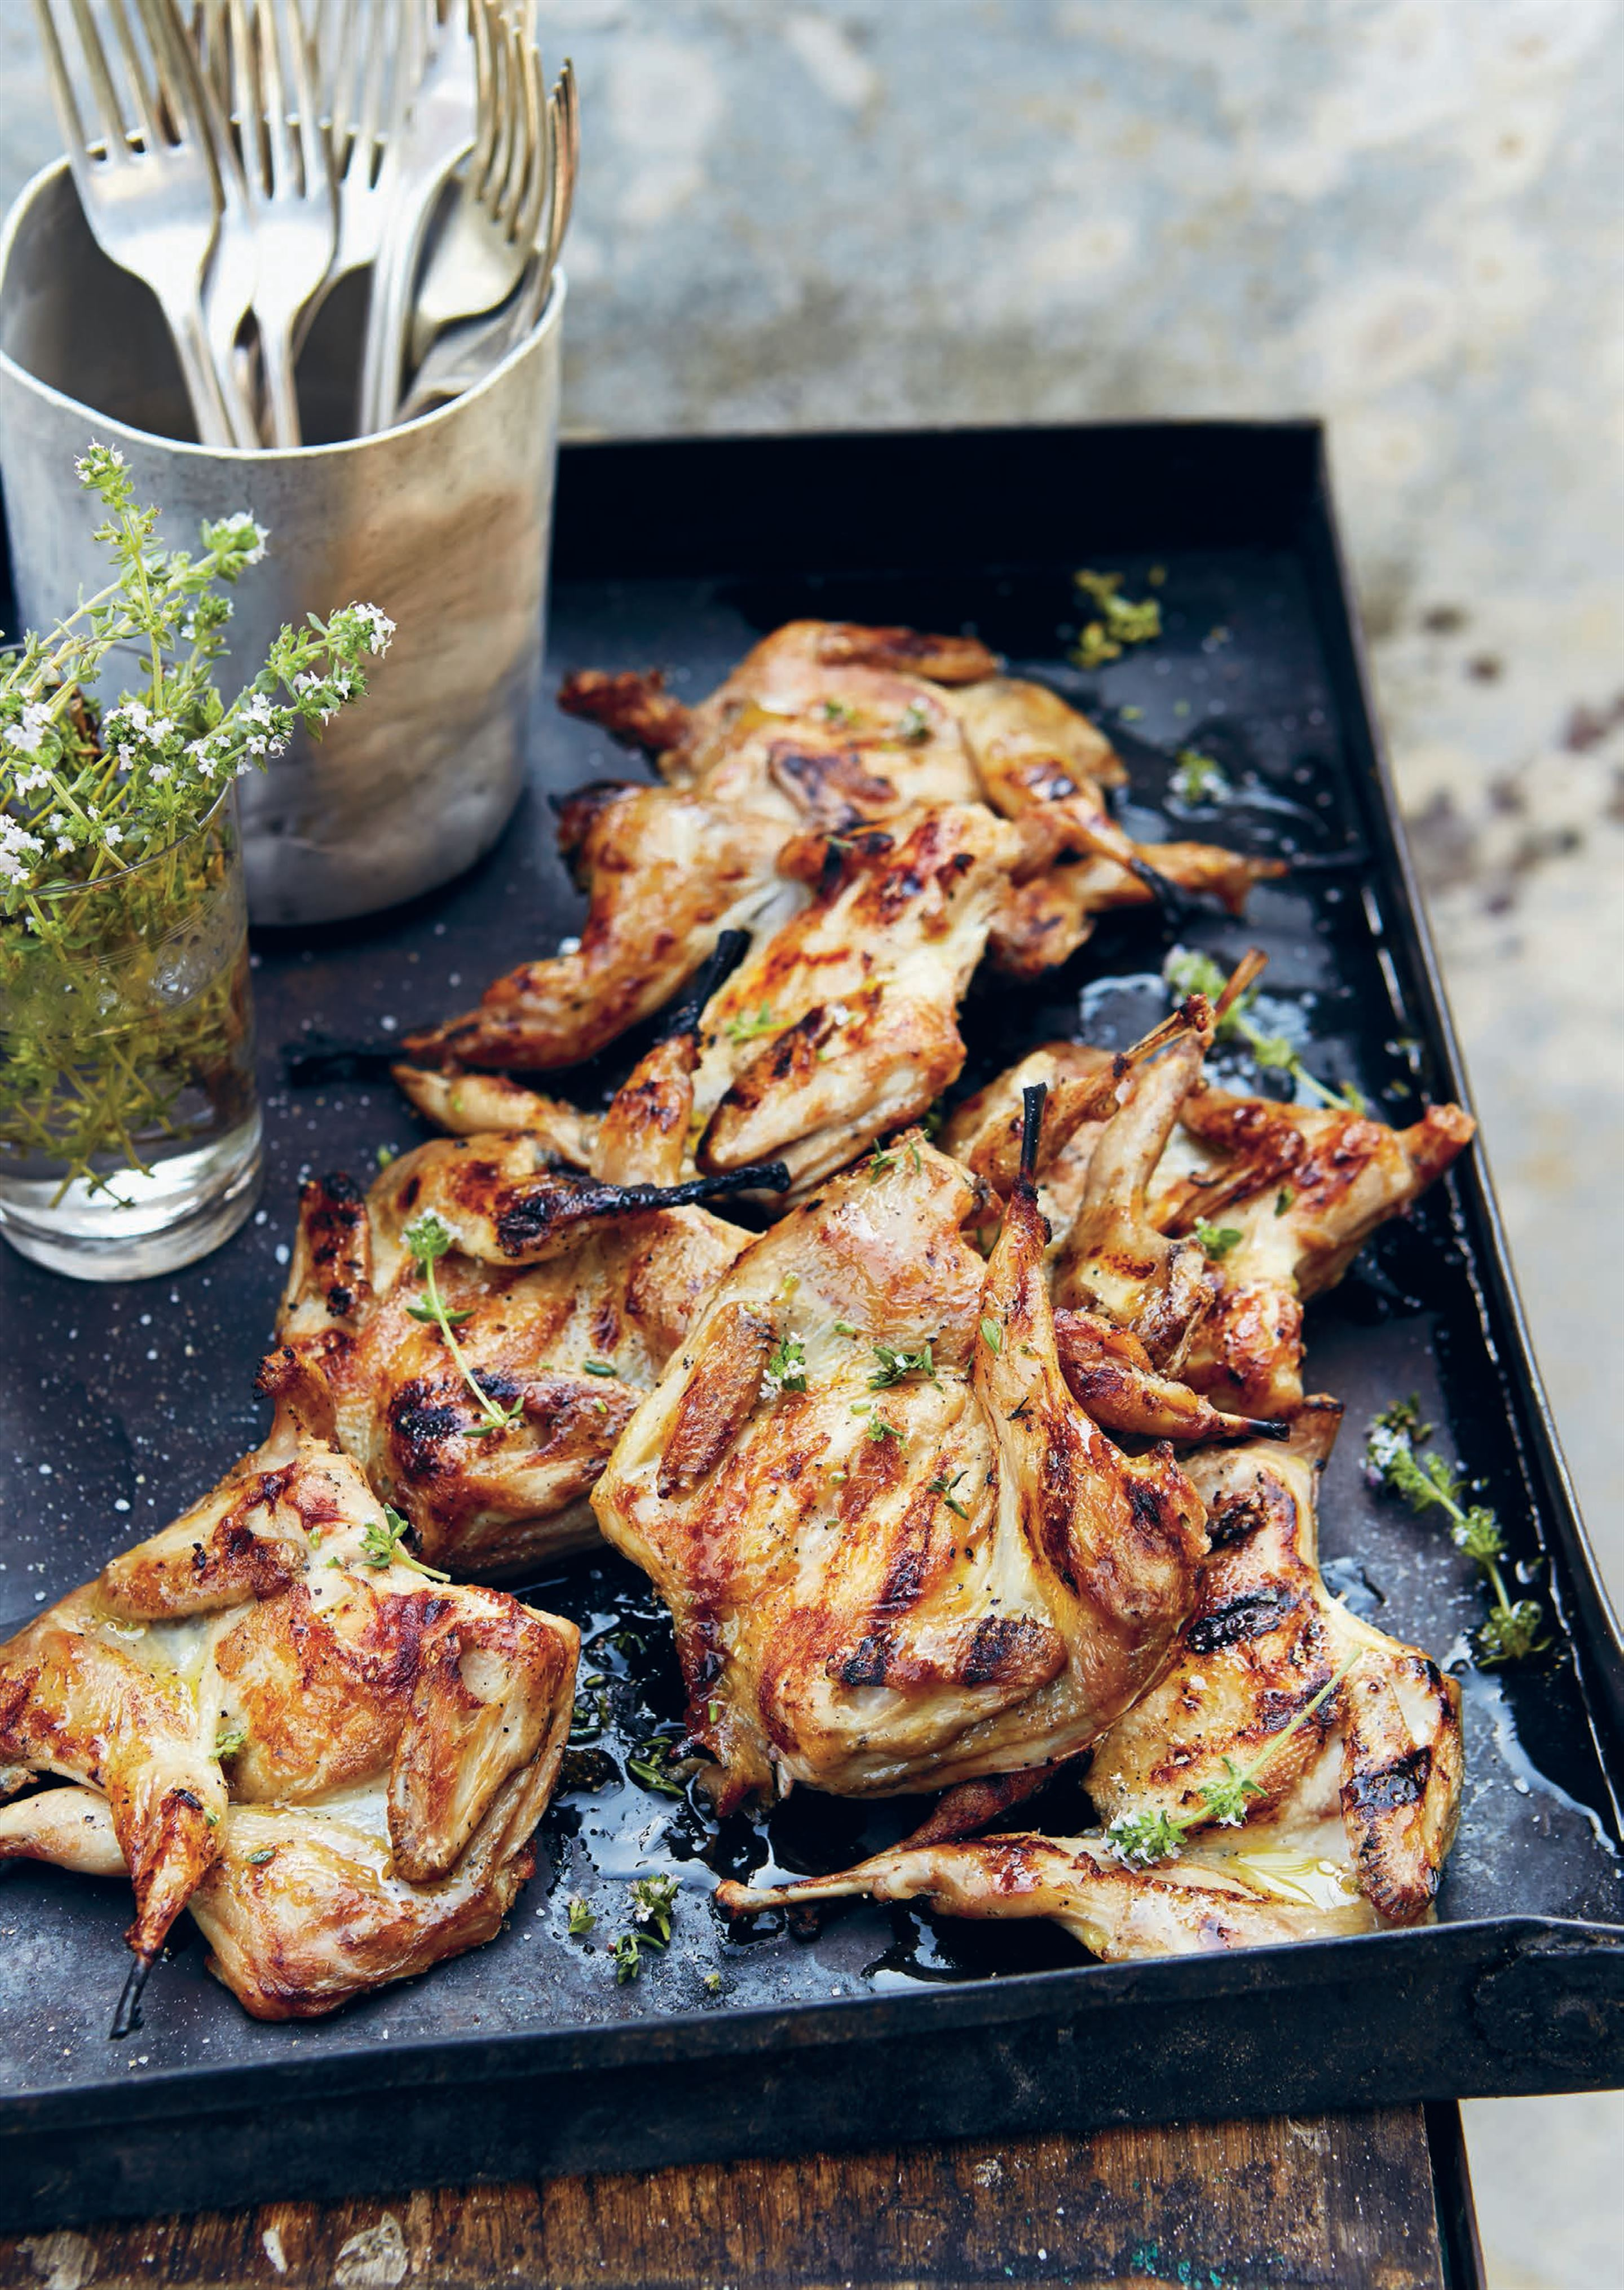 Grilled quail